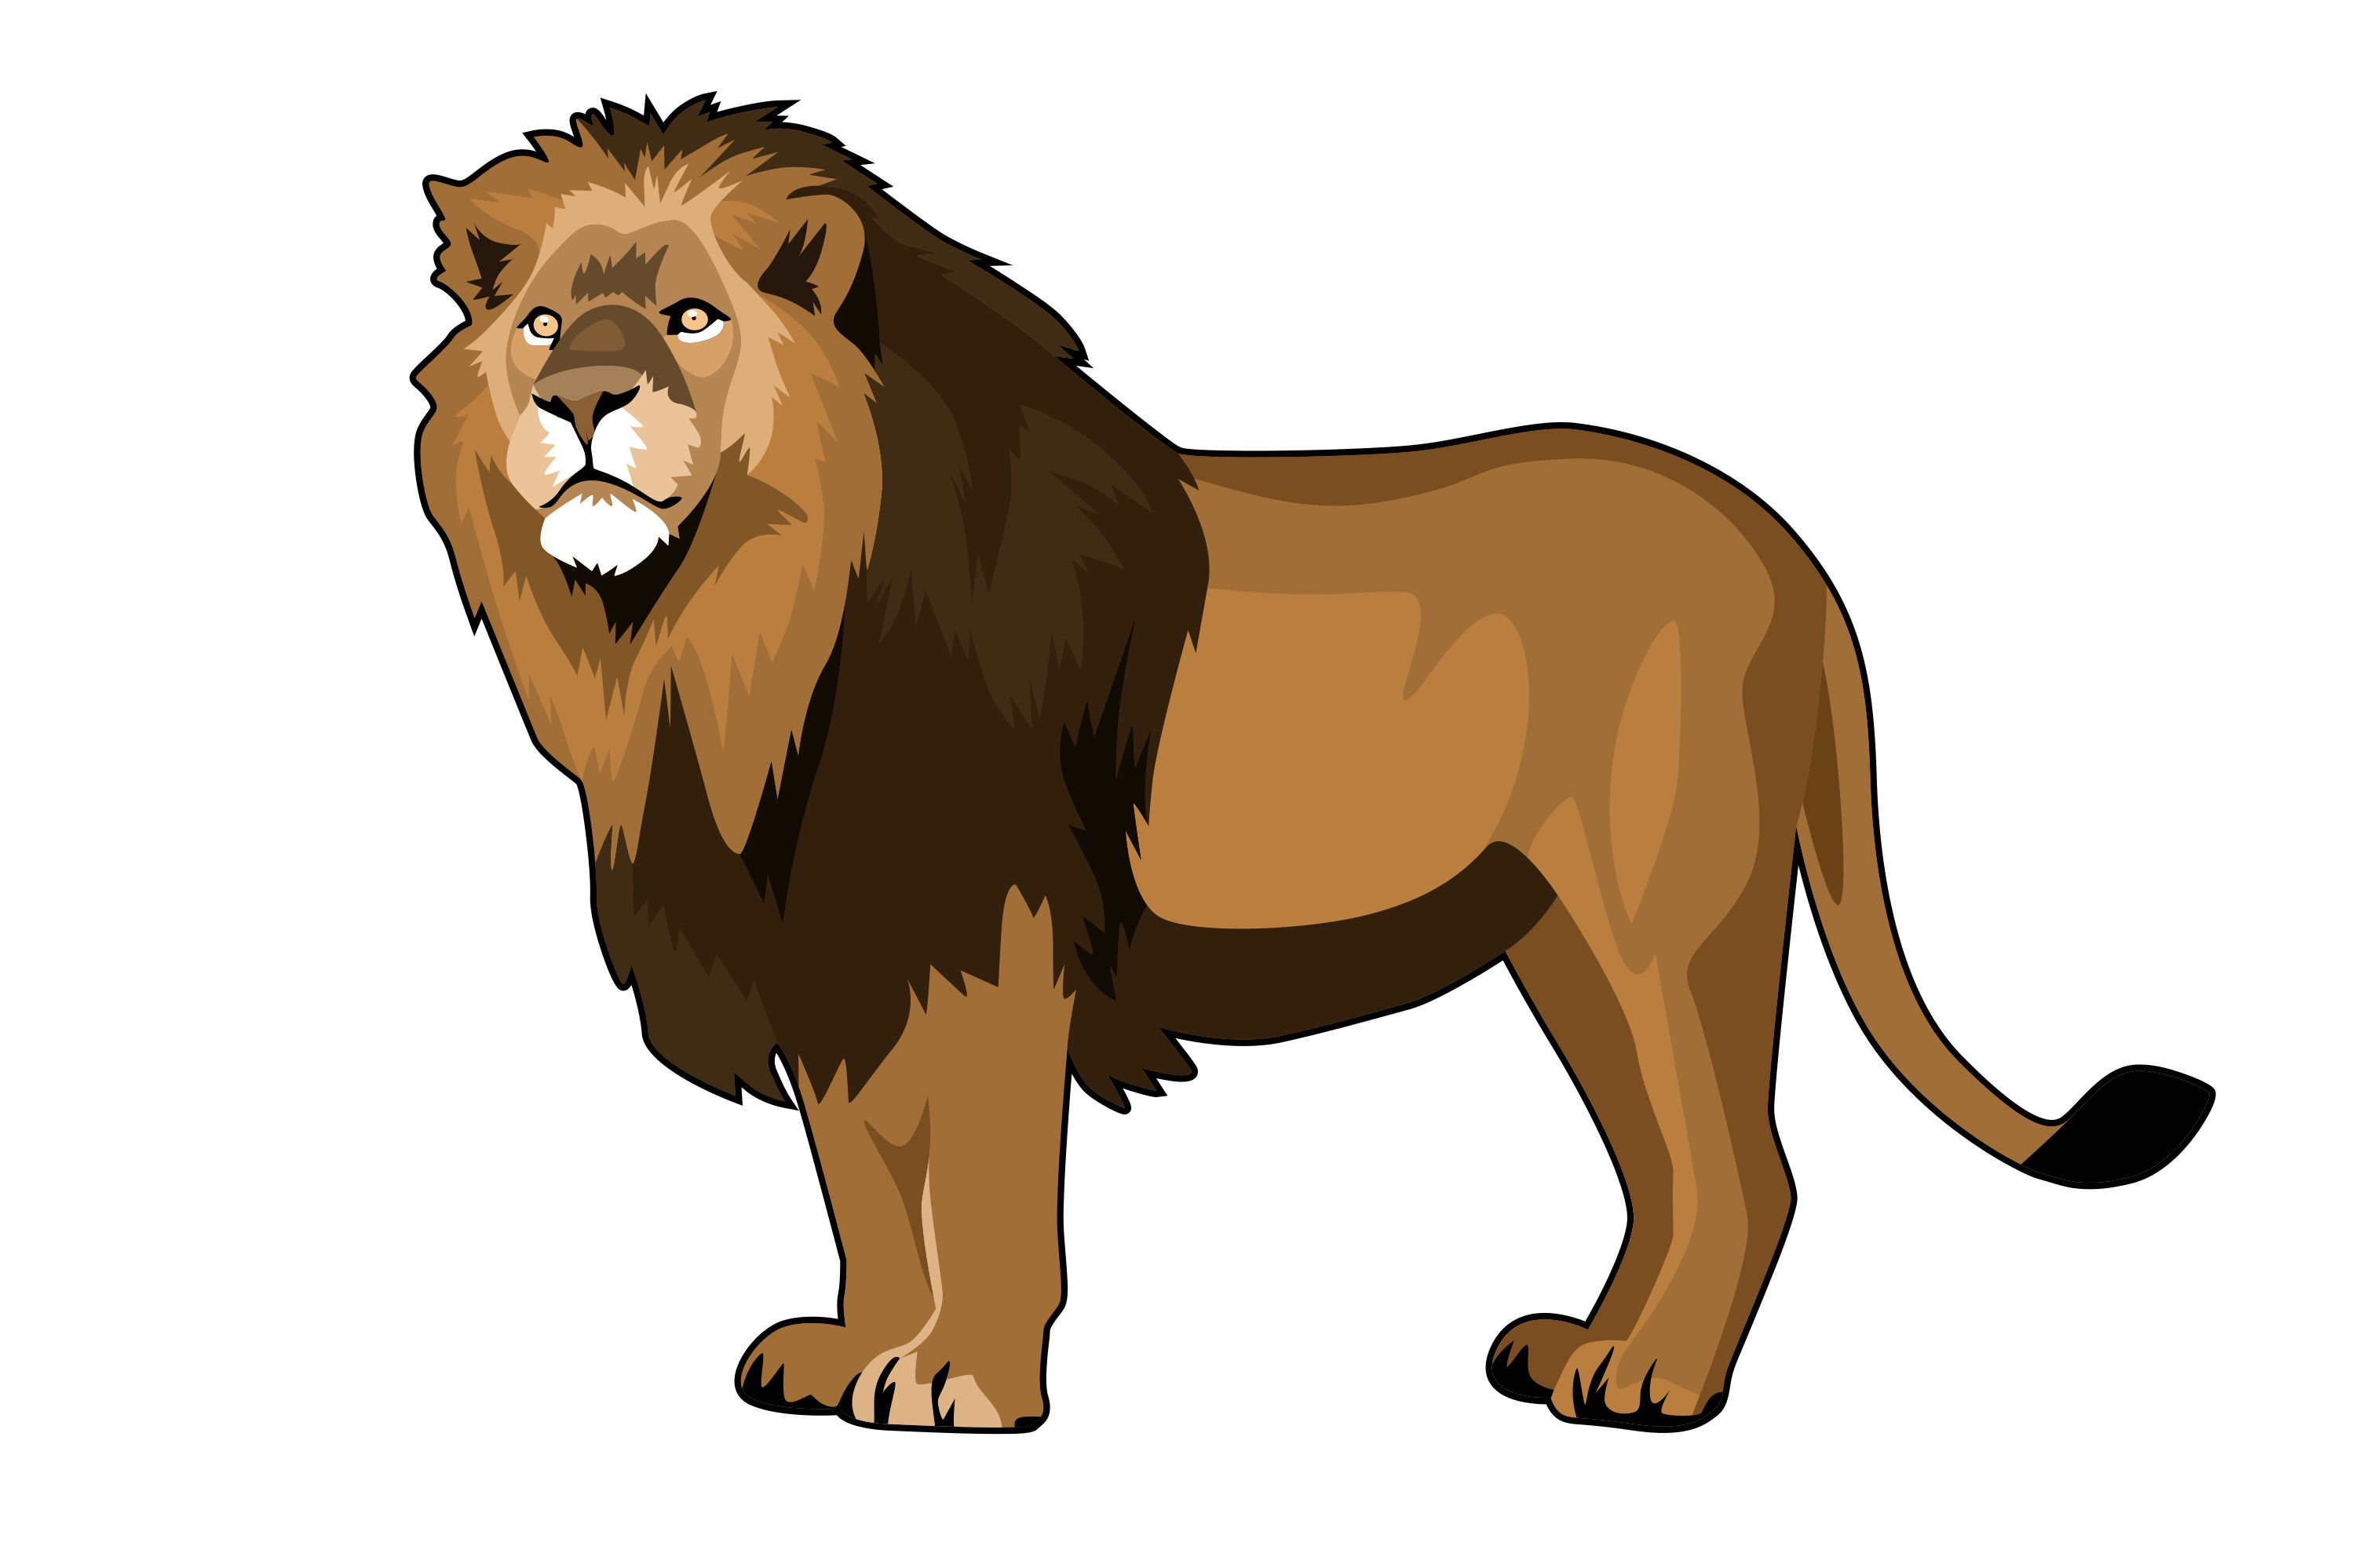 Download Free Lion Illustrations Graphic By Graphicrun123 Creative Fabrica for Cricut Explore, Silhouette and other cutting machines.